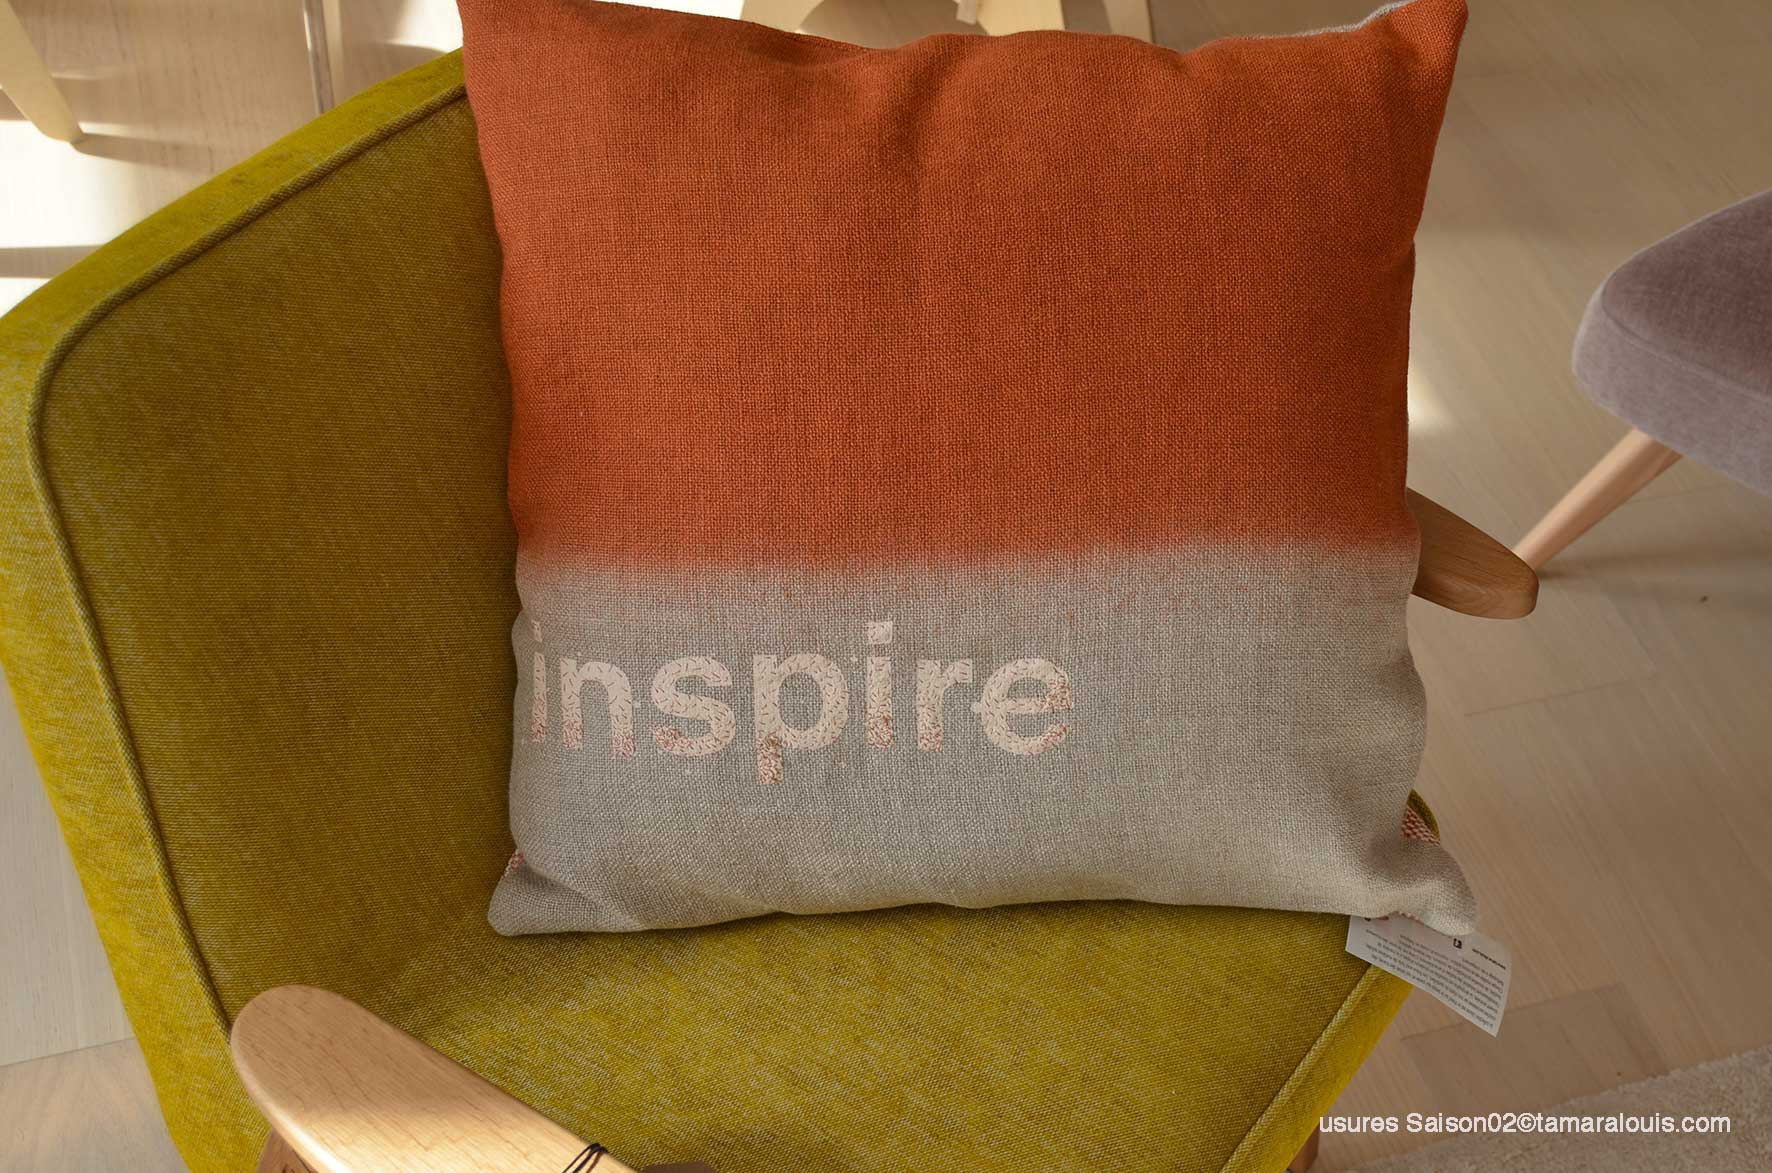 slowdesign & ameublement upcycling coussin